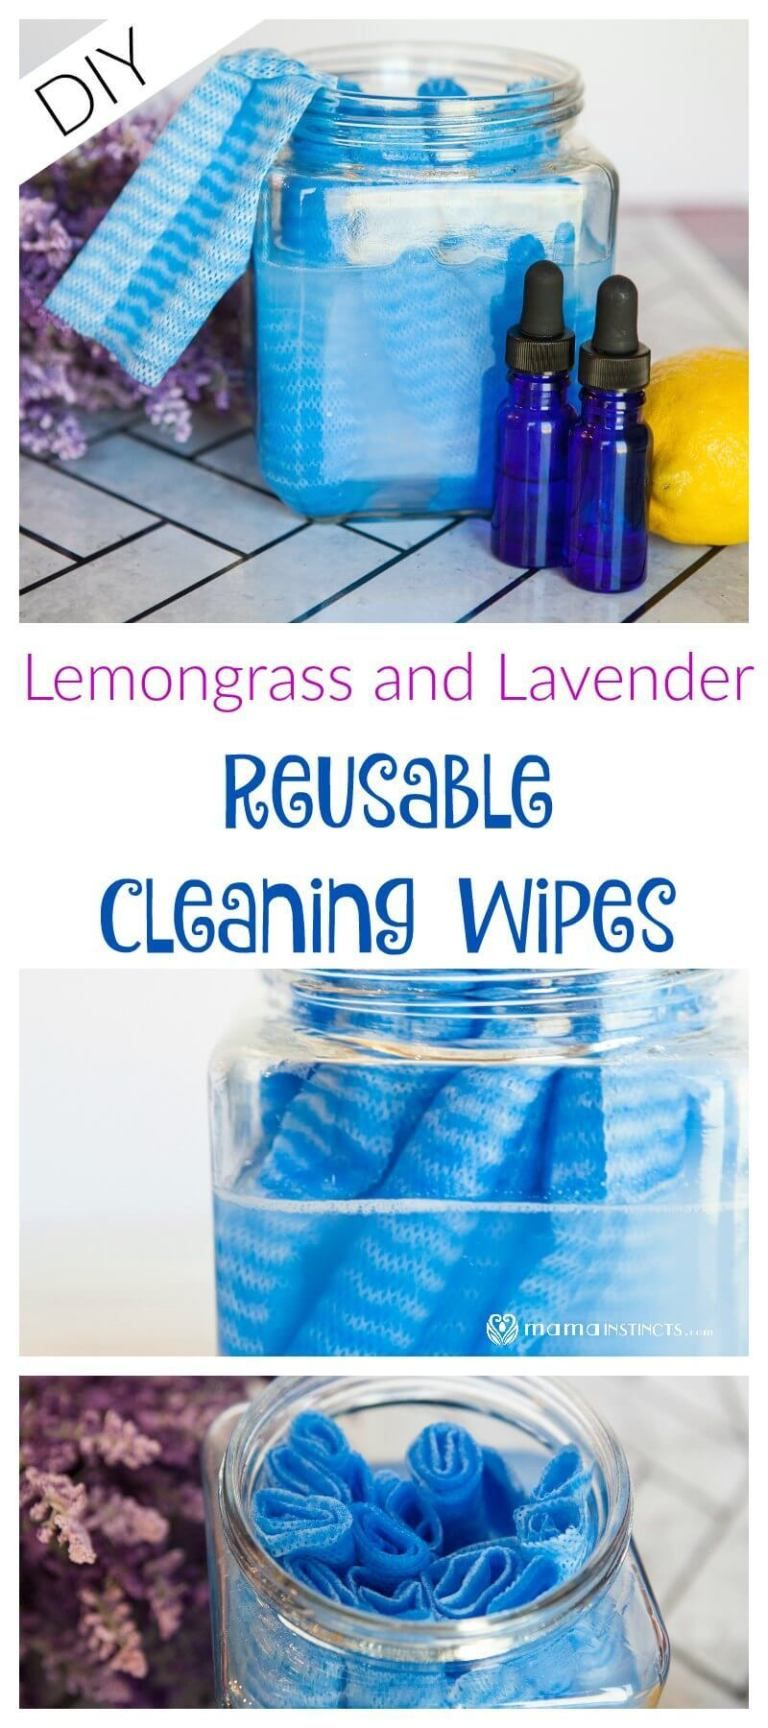 Lemongrass And Lavender Reusable Cleaning Wipes